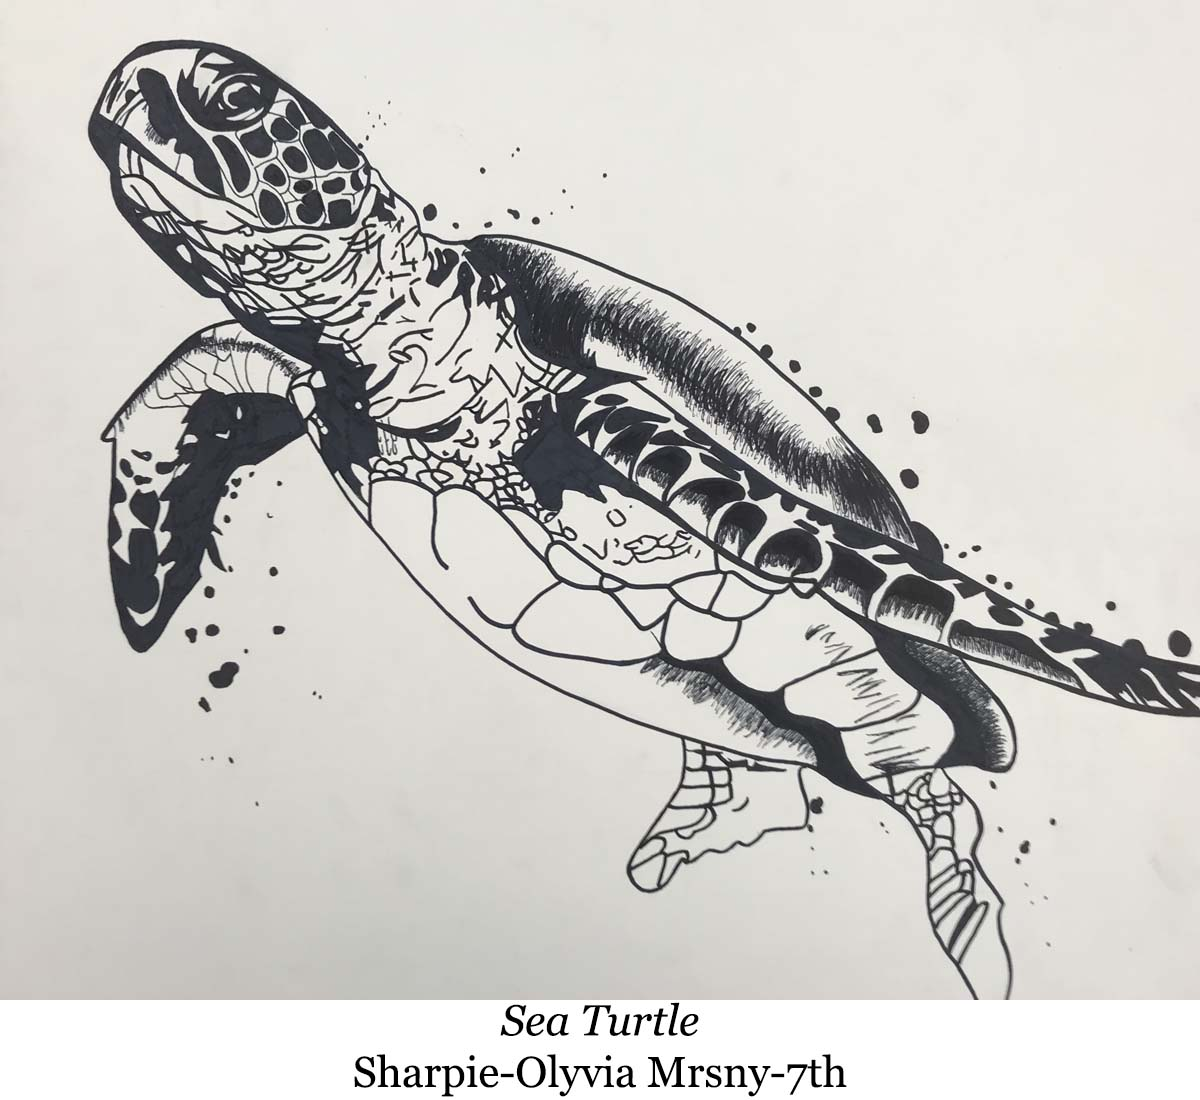 1587088183-sea_turtle-sharpie-olyvia_mrsny-7th